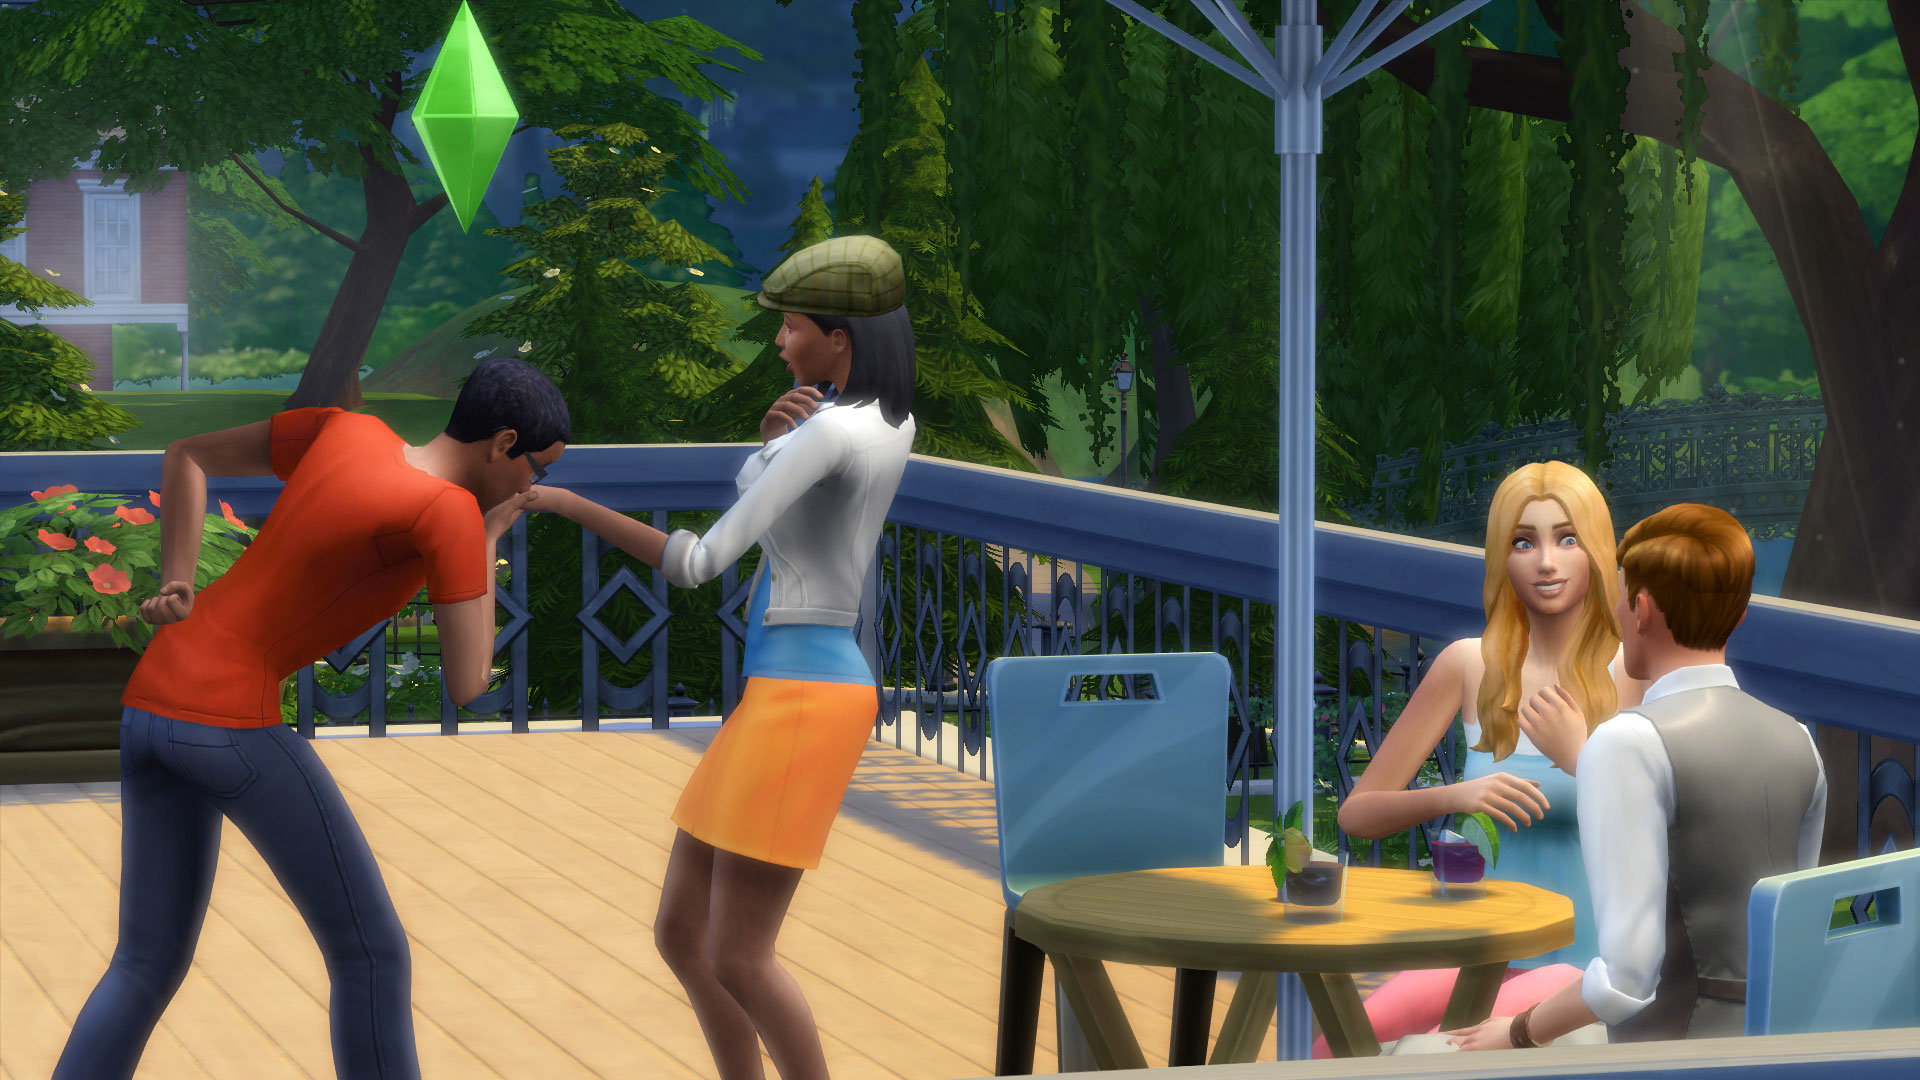 The Sims 4 Gets Flexible New Gender Customization Options ts4 live 4